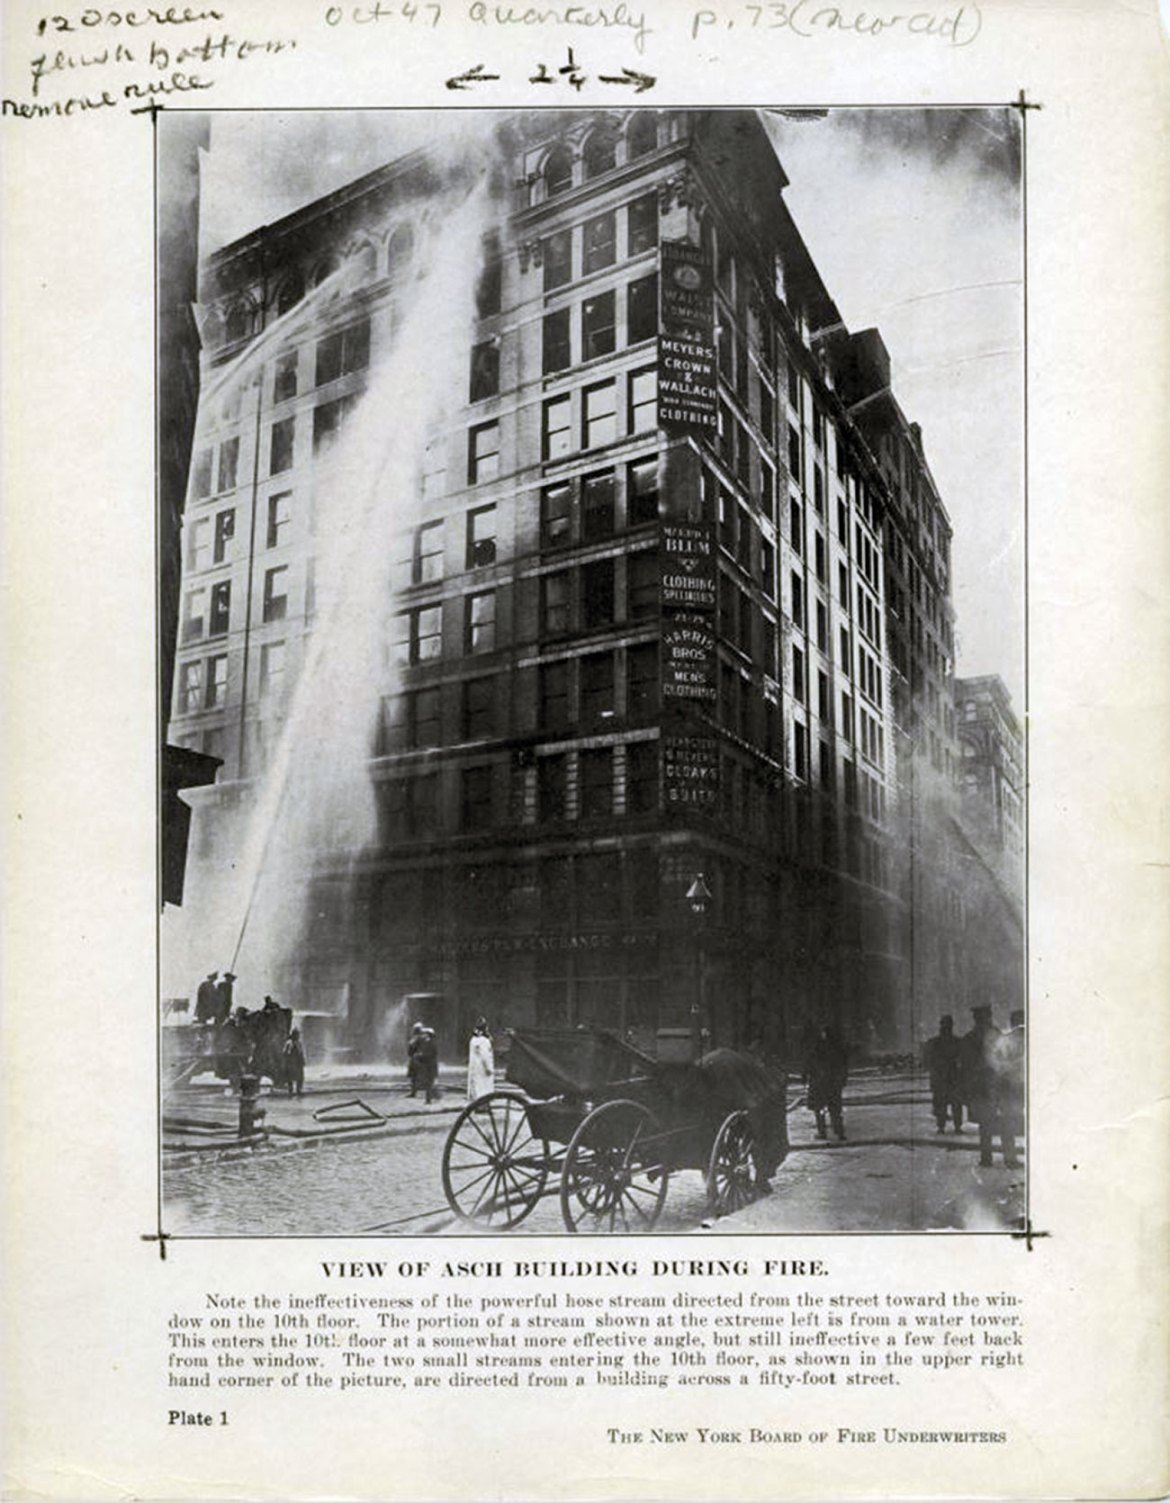 Triangle Shirtwaist Factory Fire in New York City was one of the deadliest fires in US history, killing 146 workers who were thwarted by locked doors and exits. The tragedy led to the Buildings Exits Code, which became the life safety code or NFPA 101 and influenced worker safety guidance.